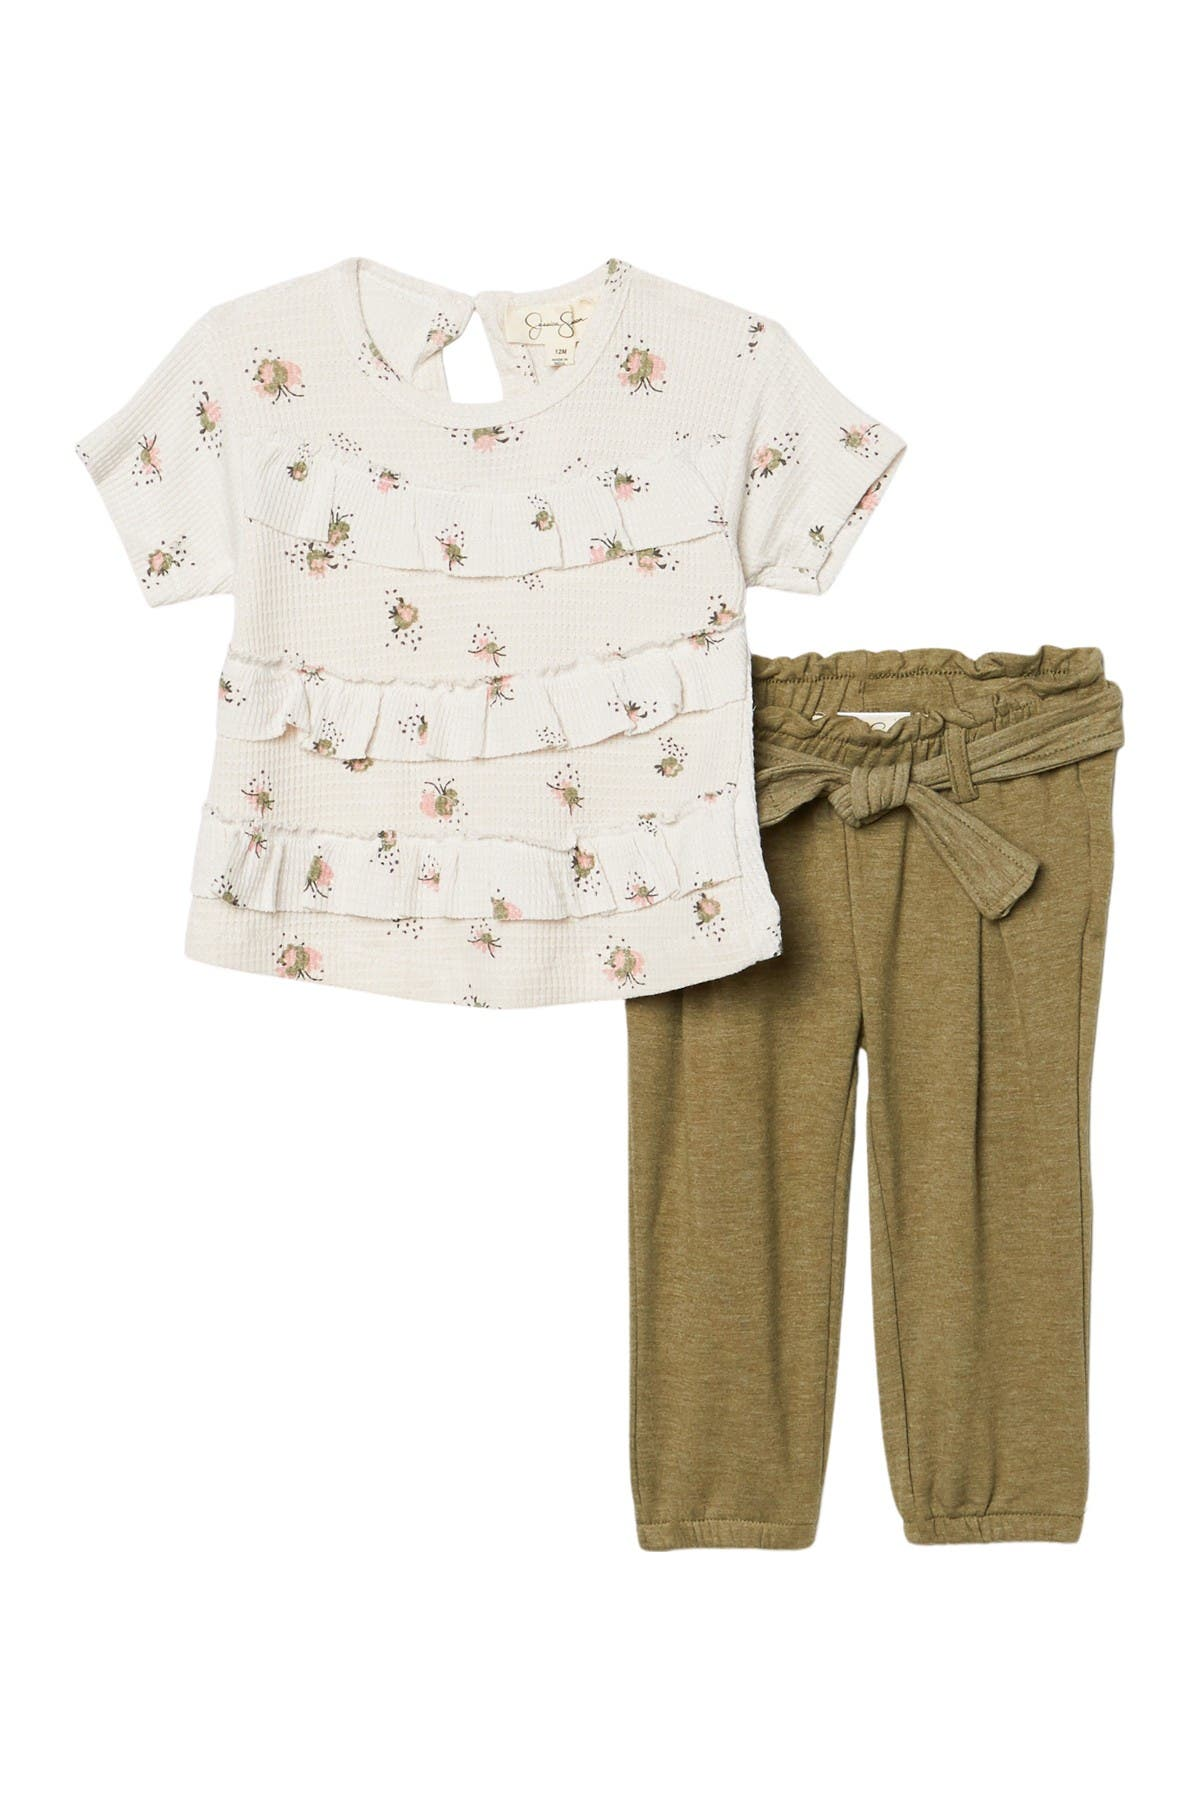 Image of Jessica Simpson Short Sleeve Printed Thermal Knit Top & Pants 2-Piece Set